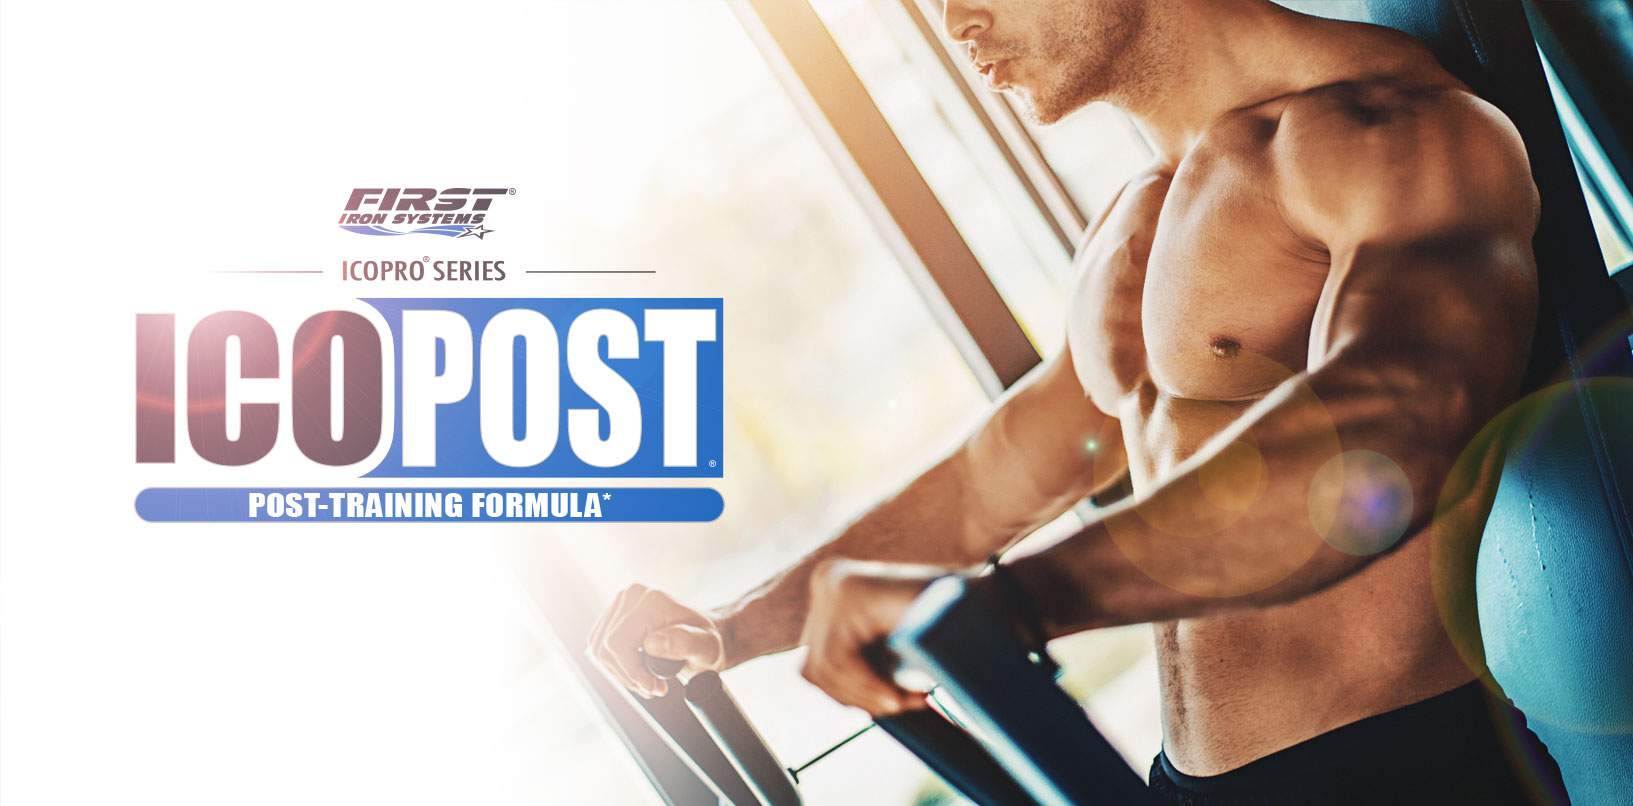 Icopost First iron Systems